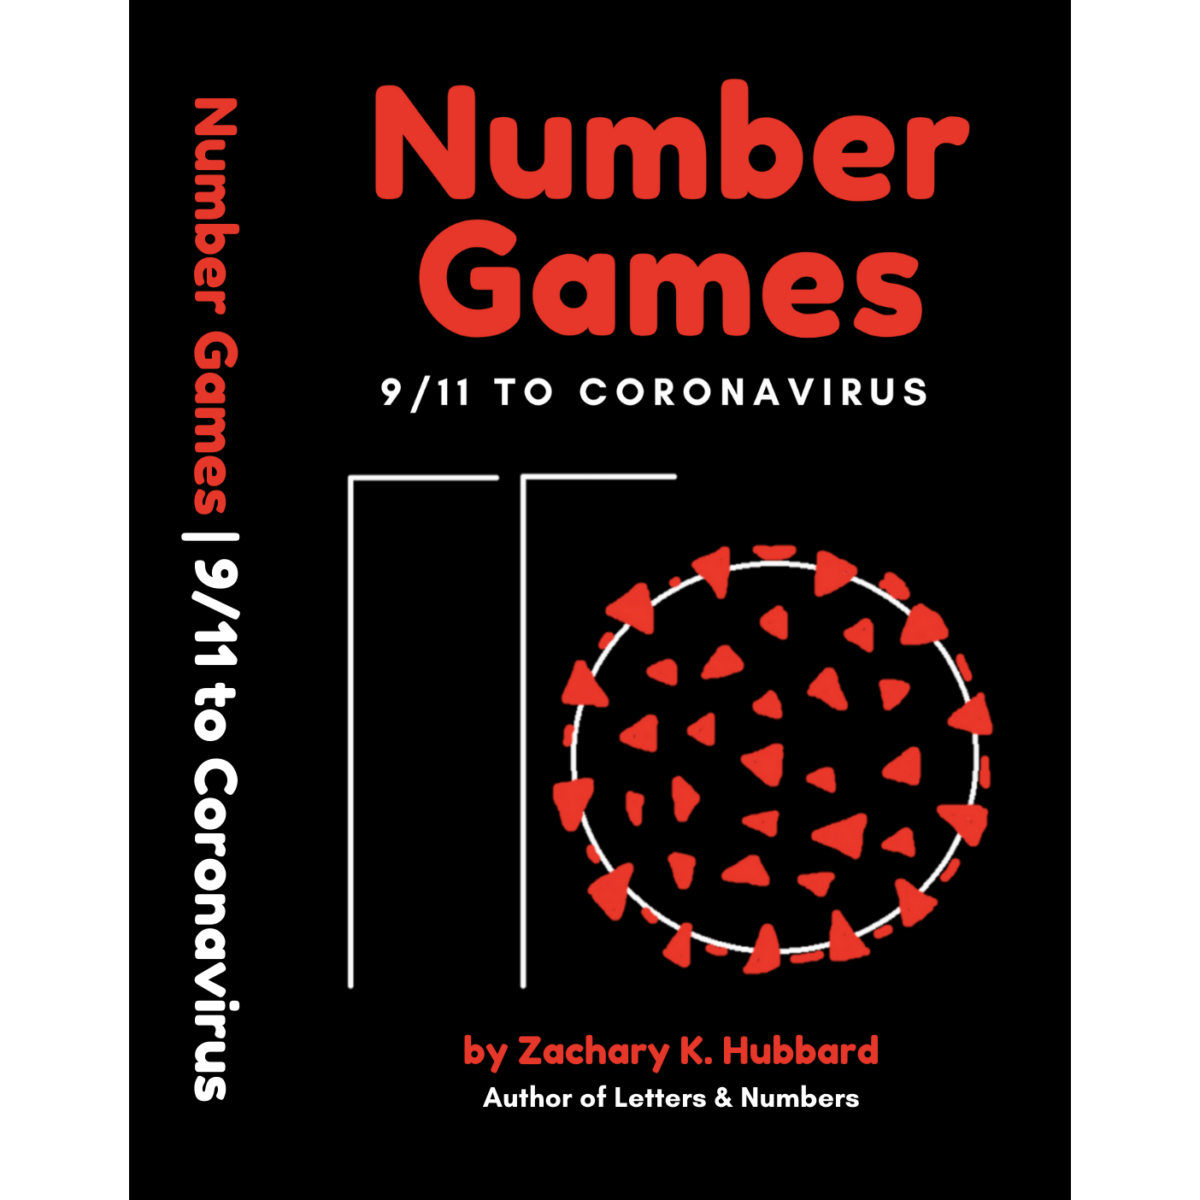 square number games cover